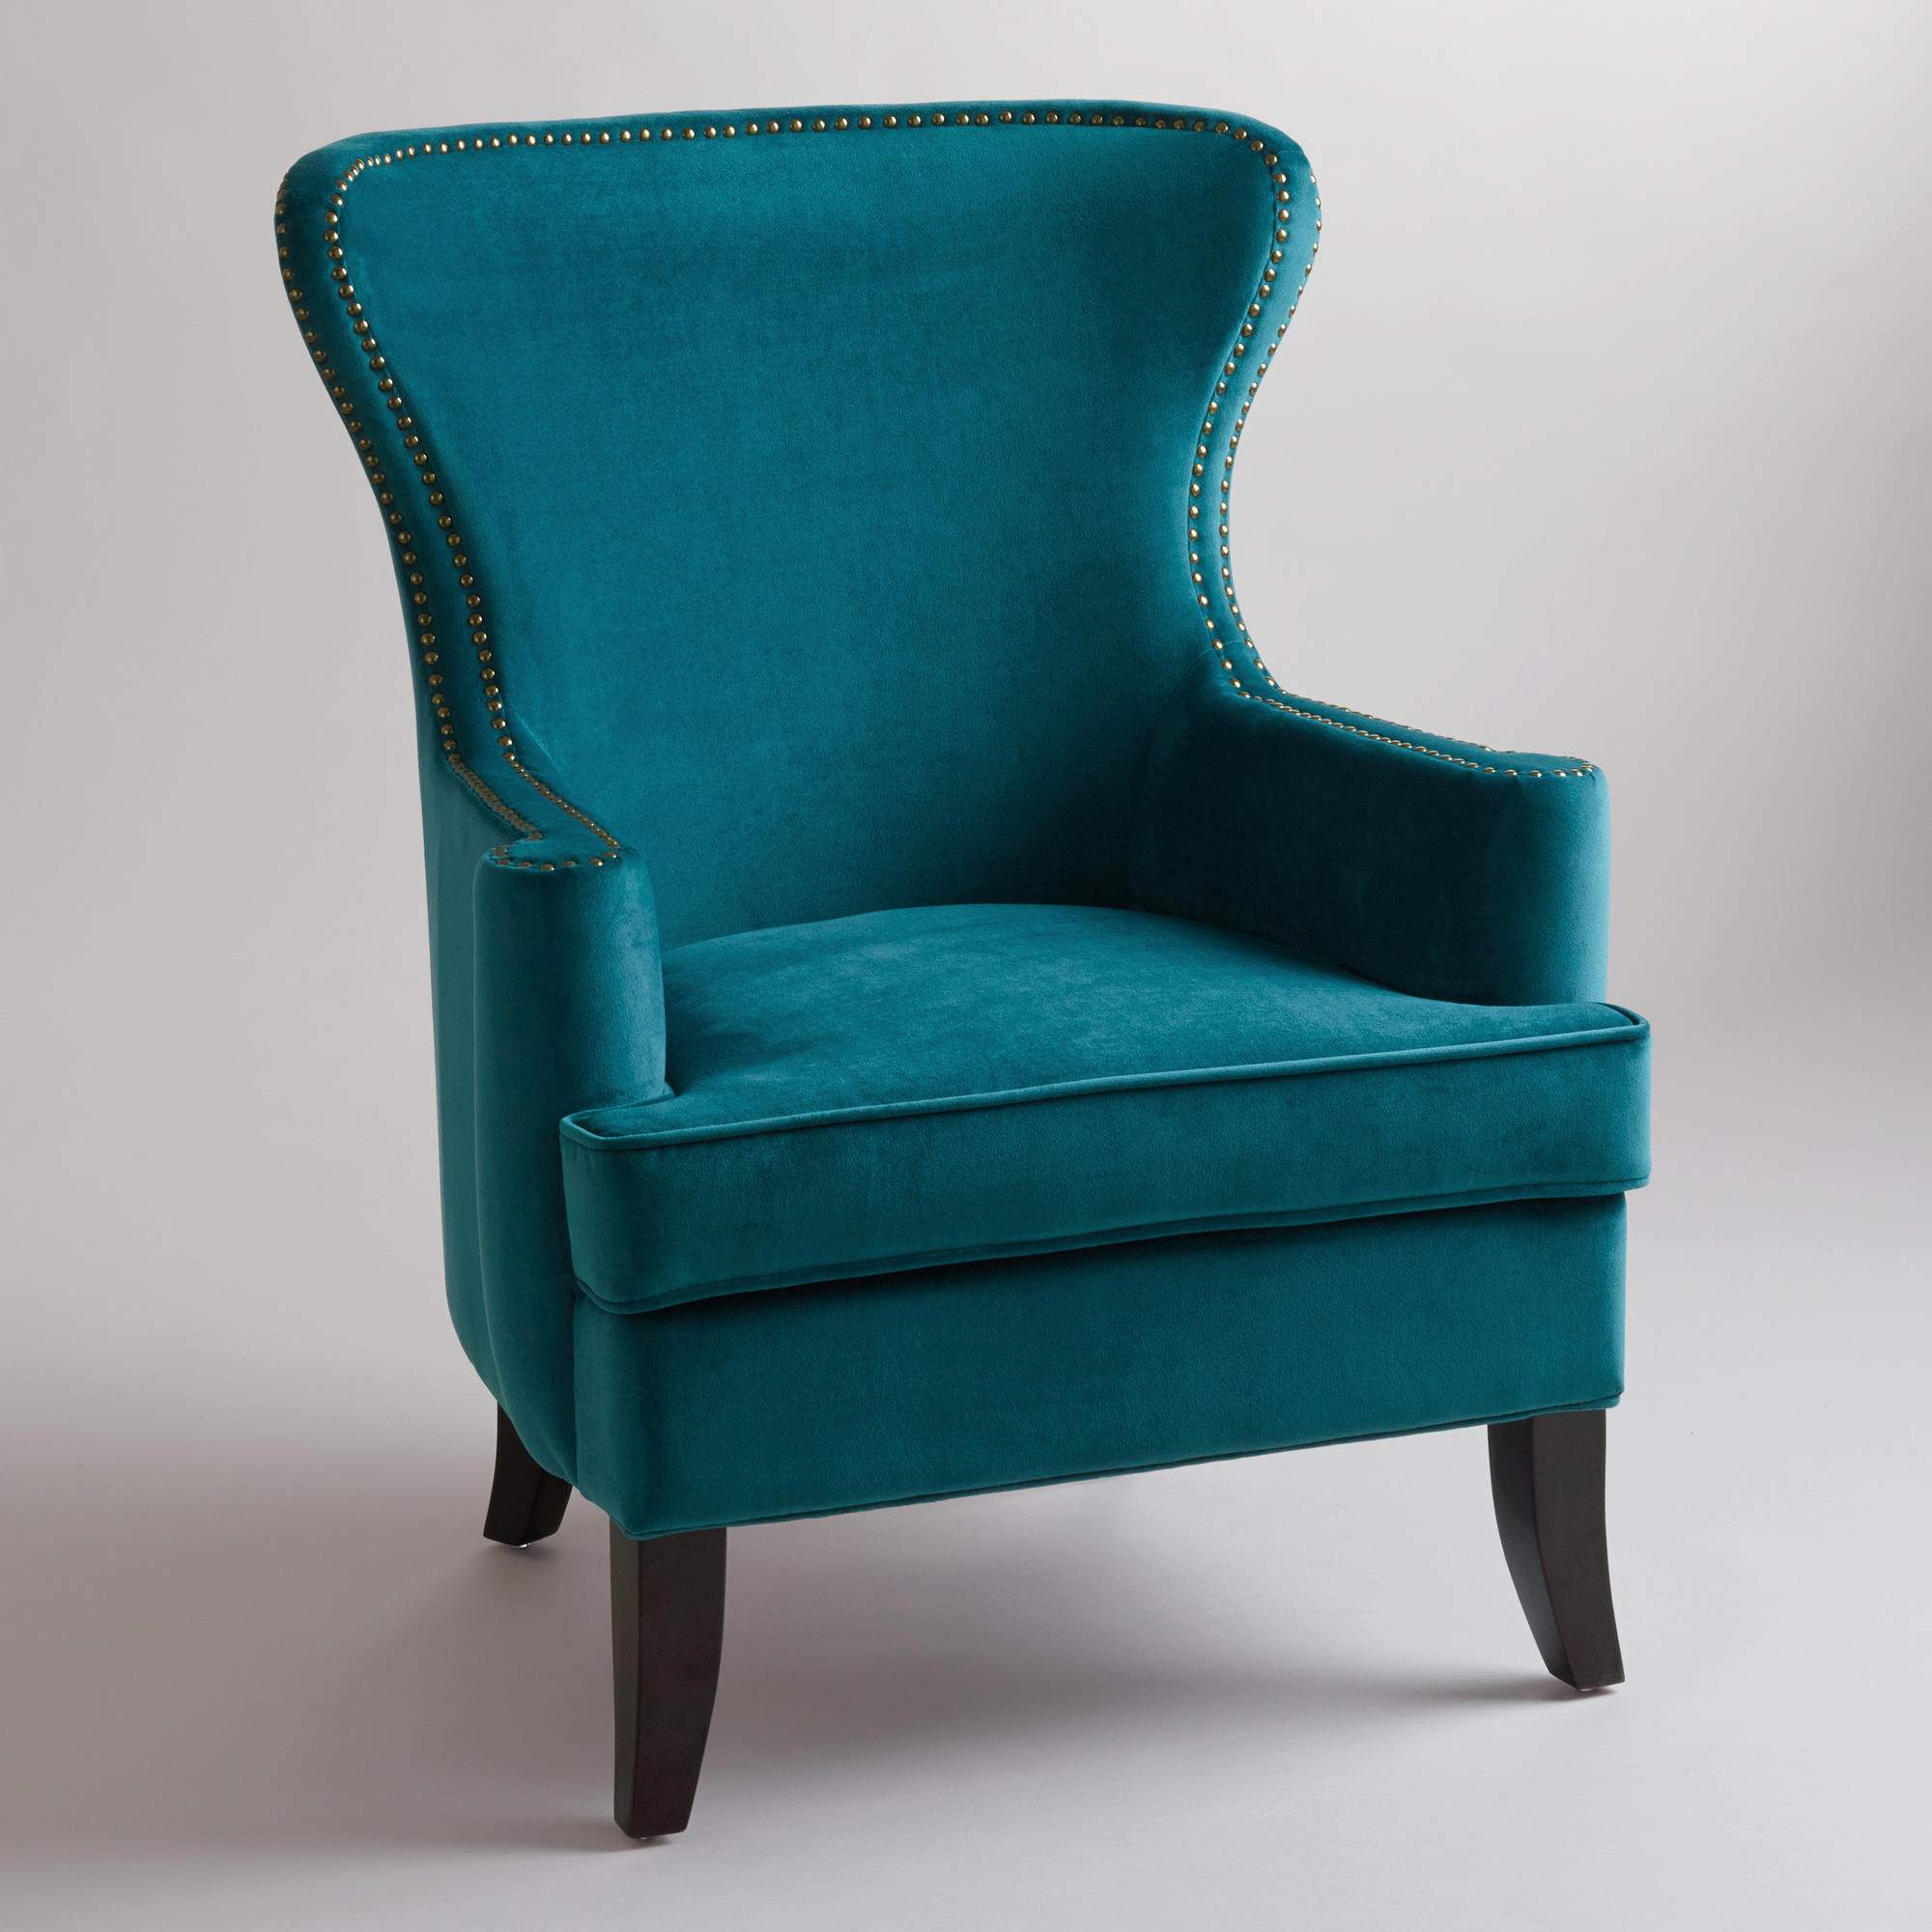 Furniture Target Slipcovers Slipcovers For Sofa Oversized ~ Turquoise  Slipcover Sofa